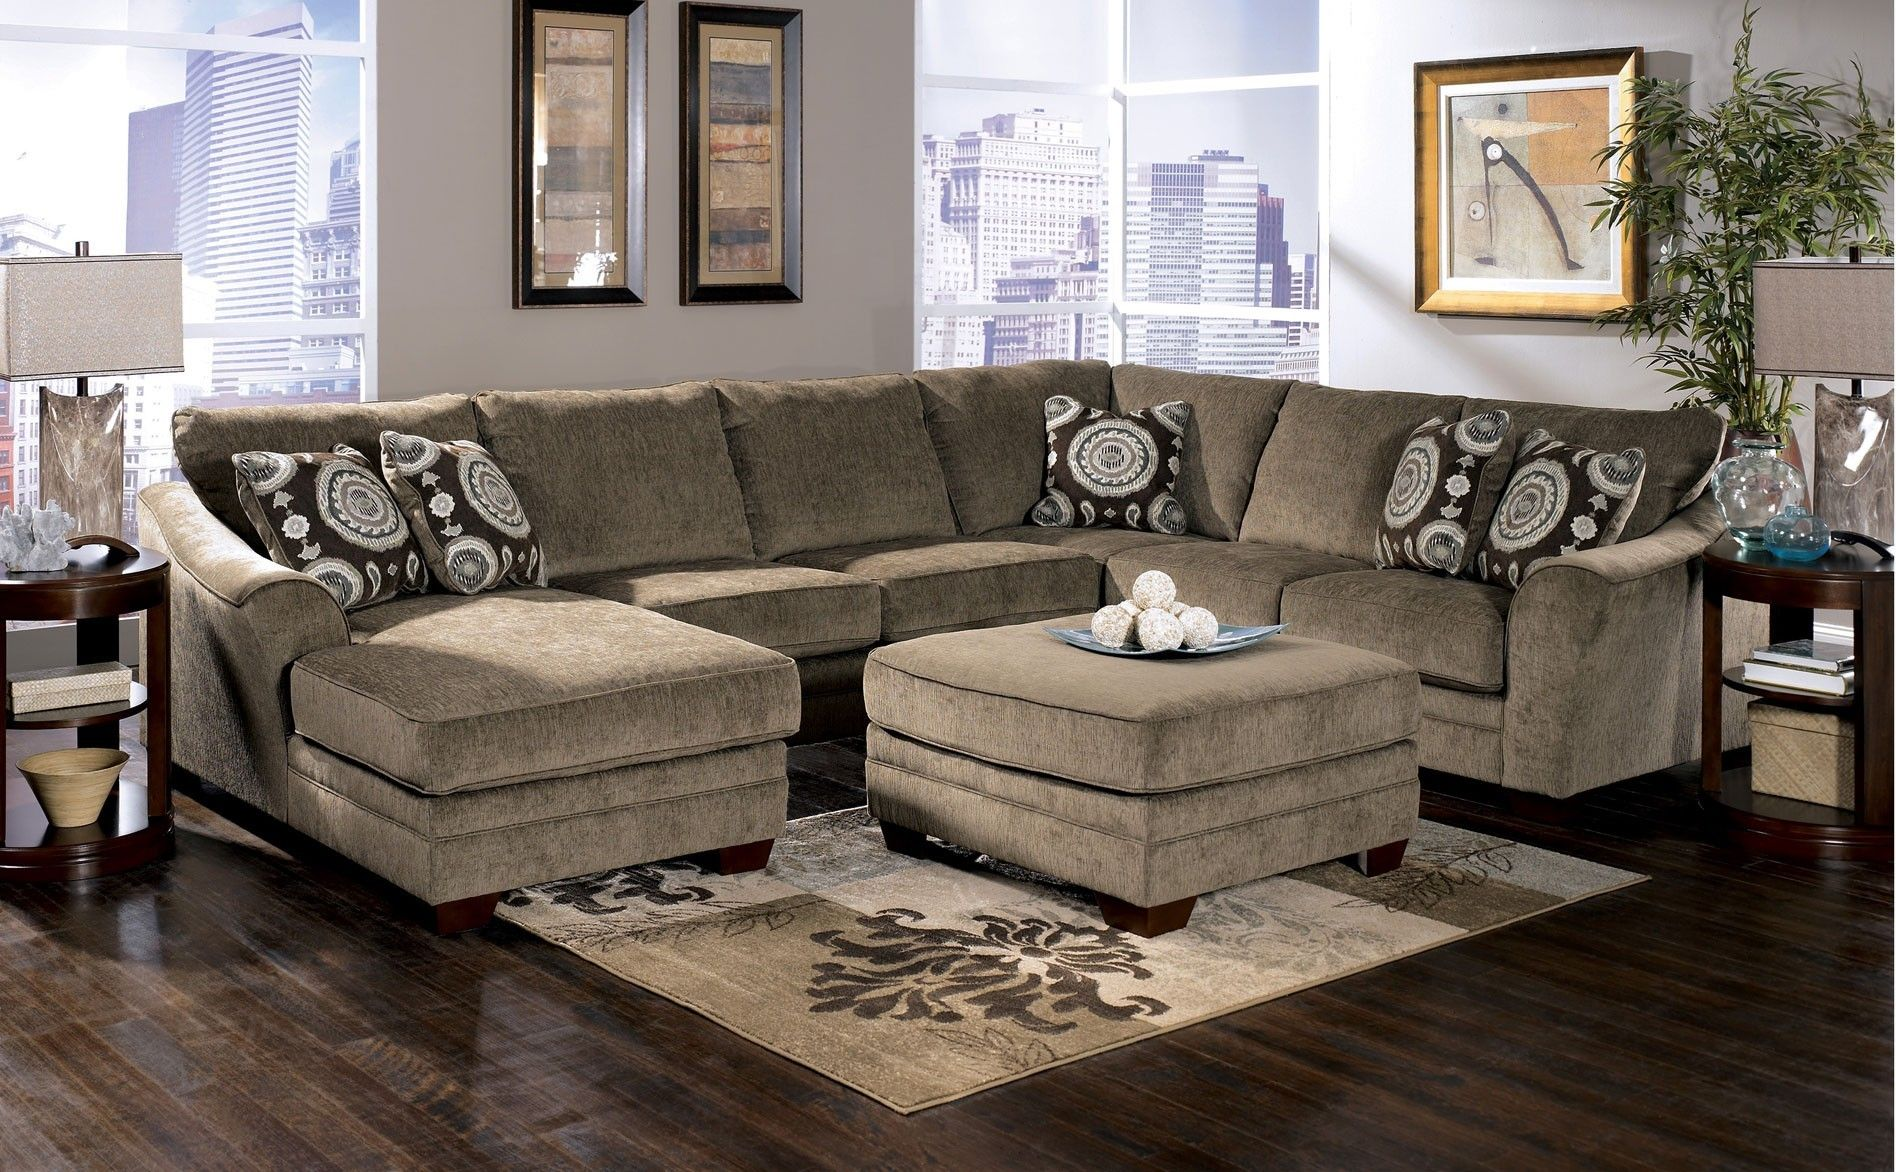 Oversized Couches Living Room Furniture In Small Google Search For The Home 2018